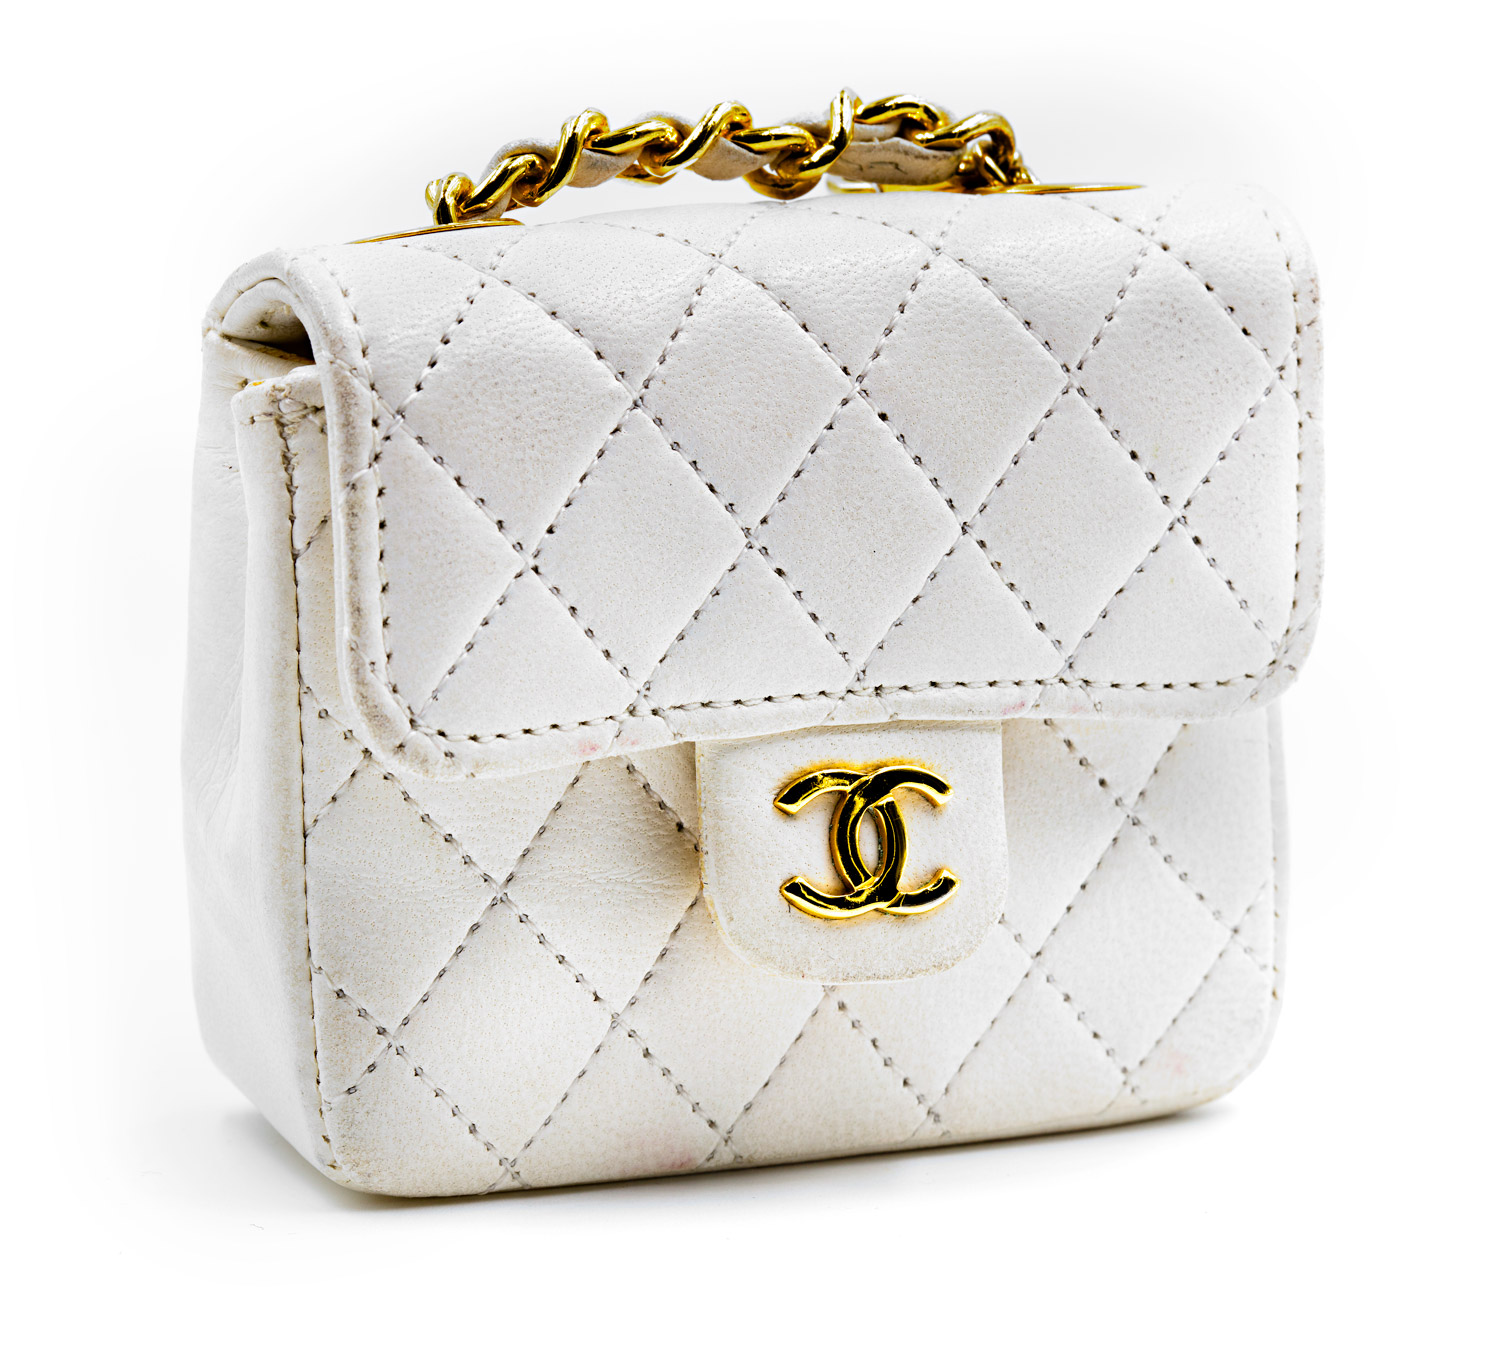 429c1aee713807 White Mini Chanel Leather Bag. white-leather-front.jpg